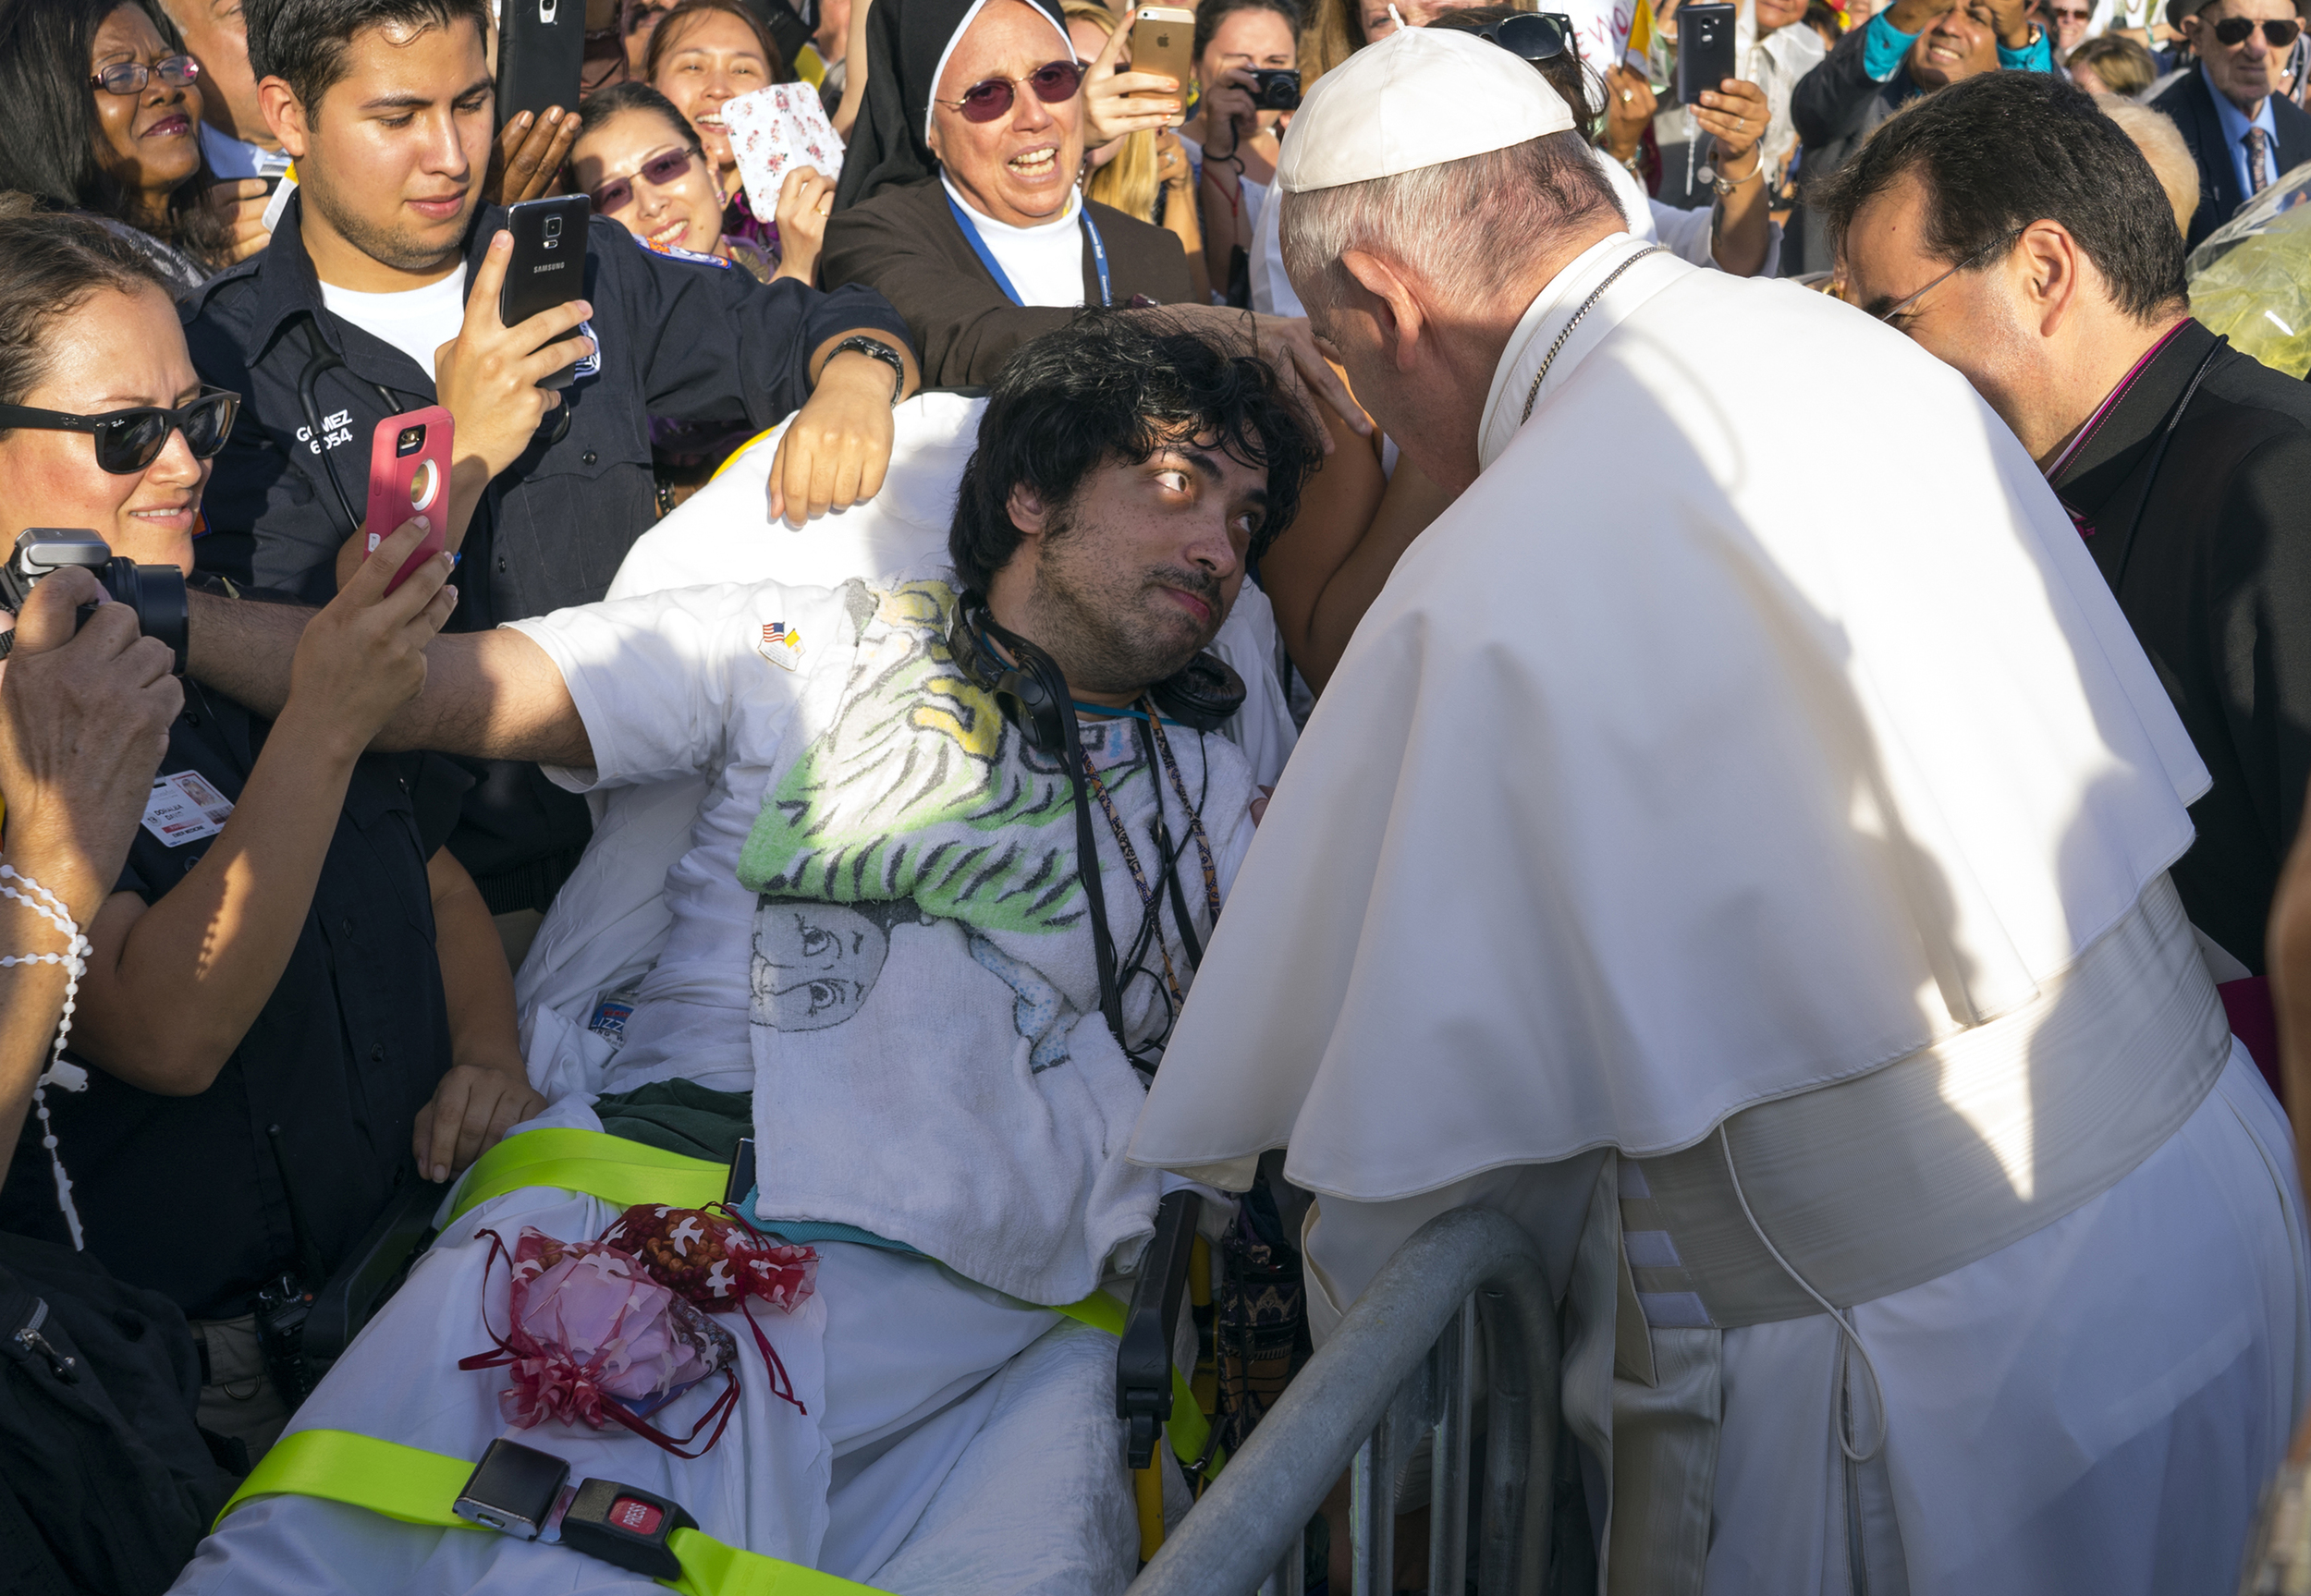 Pope Francis engages well wishes including Gerard Gubatan of Brooklyn, center left, after arriving at John F. Kennedy International Airport Thursday, Sept. 24, 2015, in New York. The pope is on a five-day trip to the USA, which includes stops in Washington DC, New York and Philadelphia, after a three-day stay in Cuba.